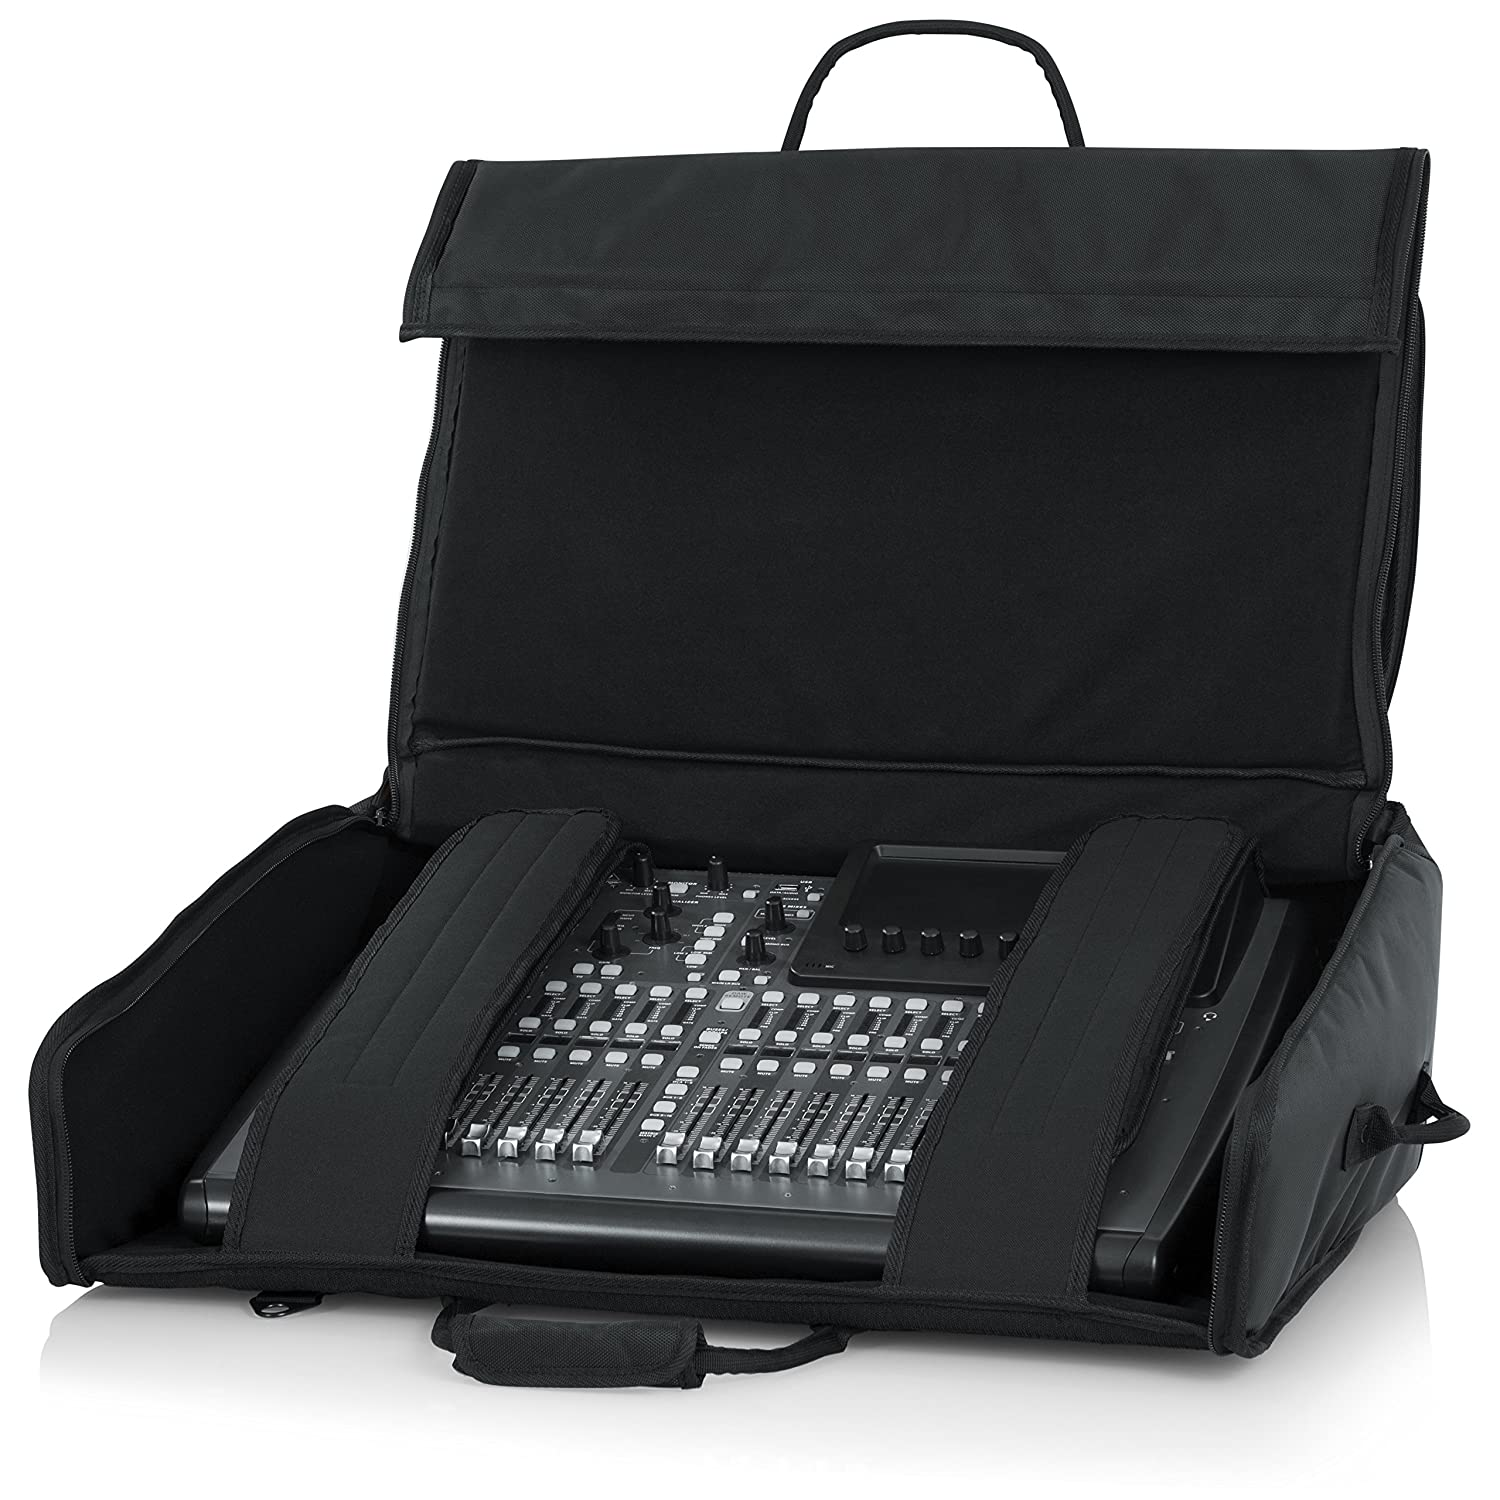 89c79f9fecb0 Amazon.com: Gator Cases Padded Large Format Mixer Carry Bag; Fits Mixers  Such as Behringer X32 Compact |26